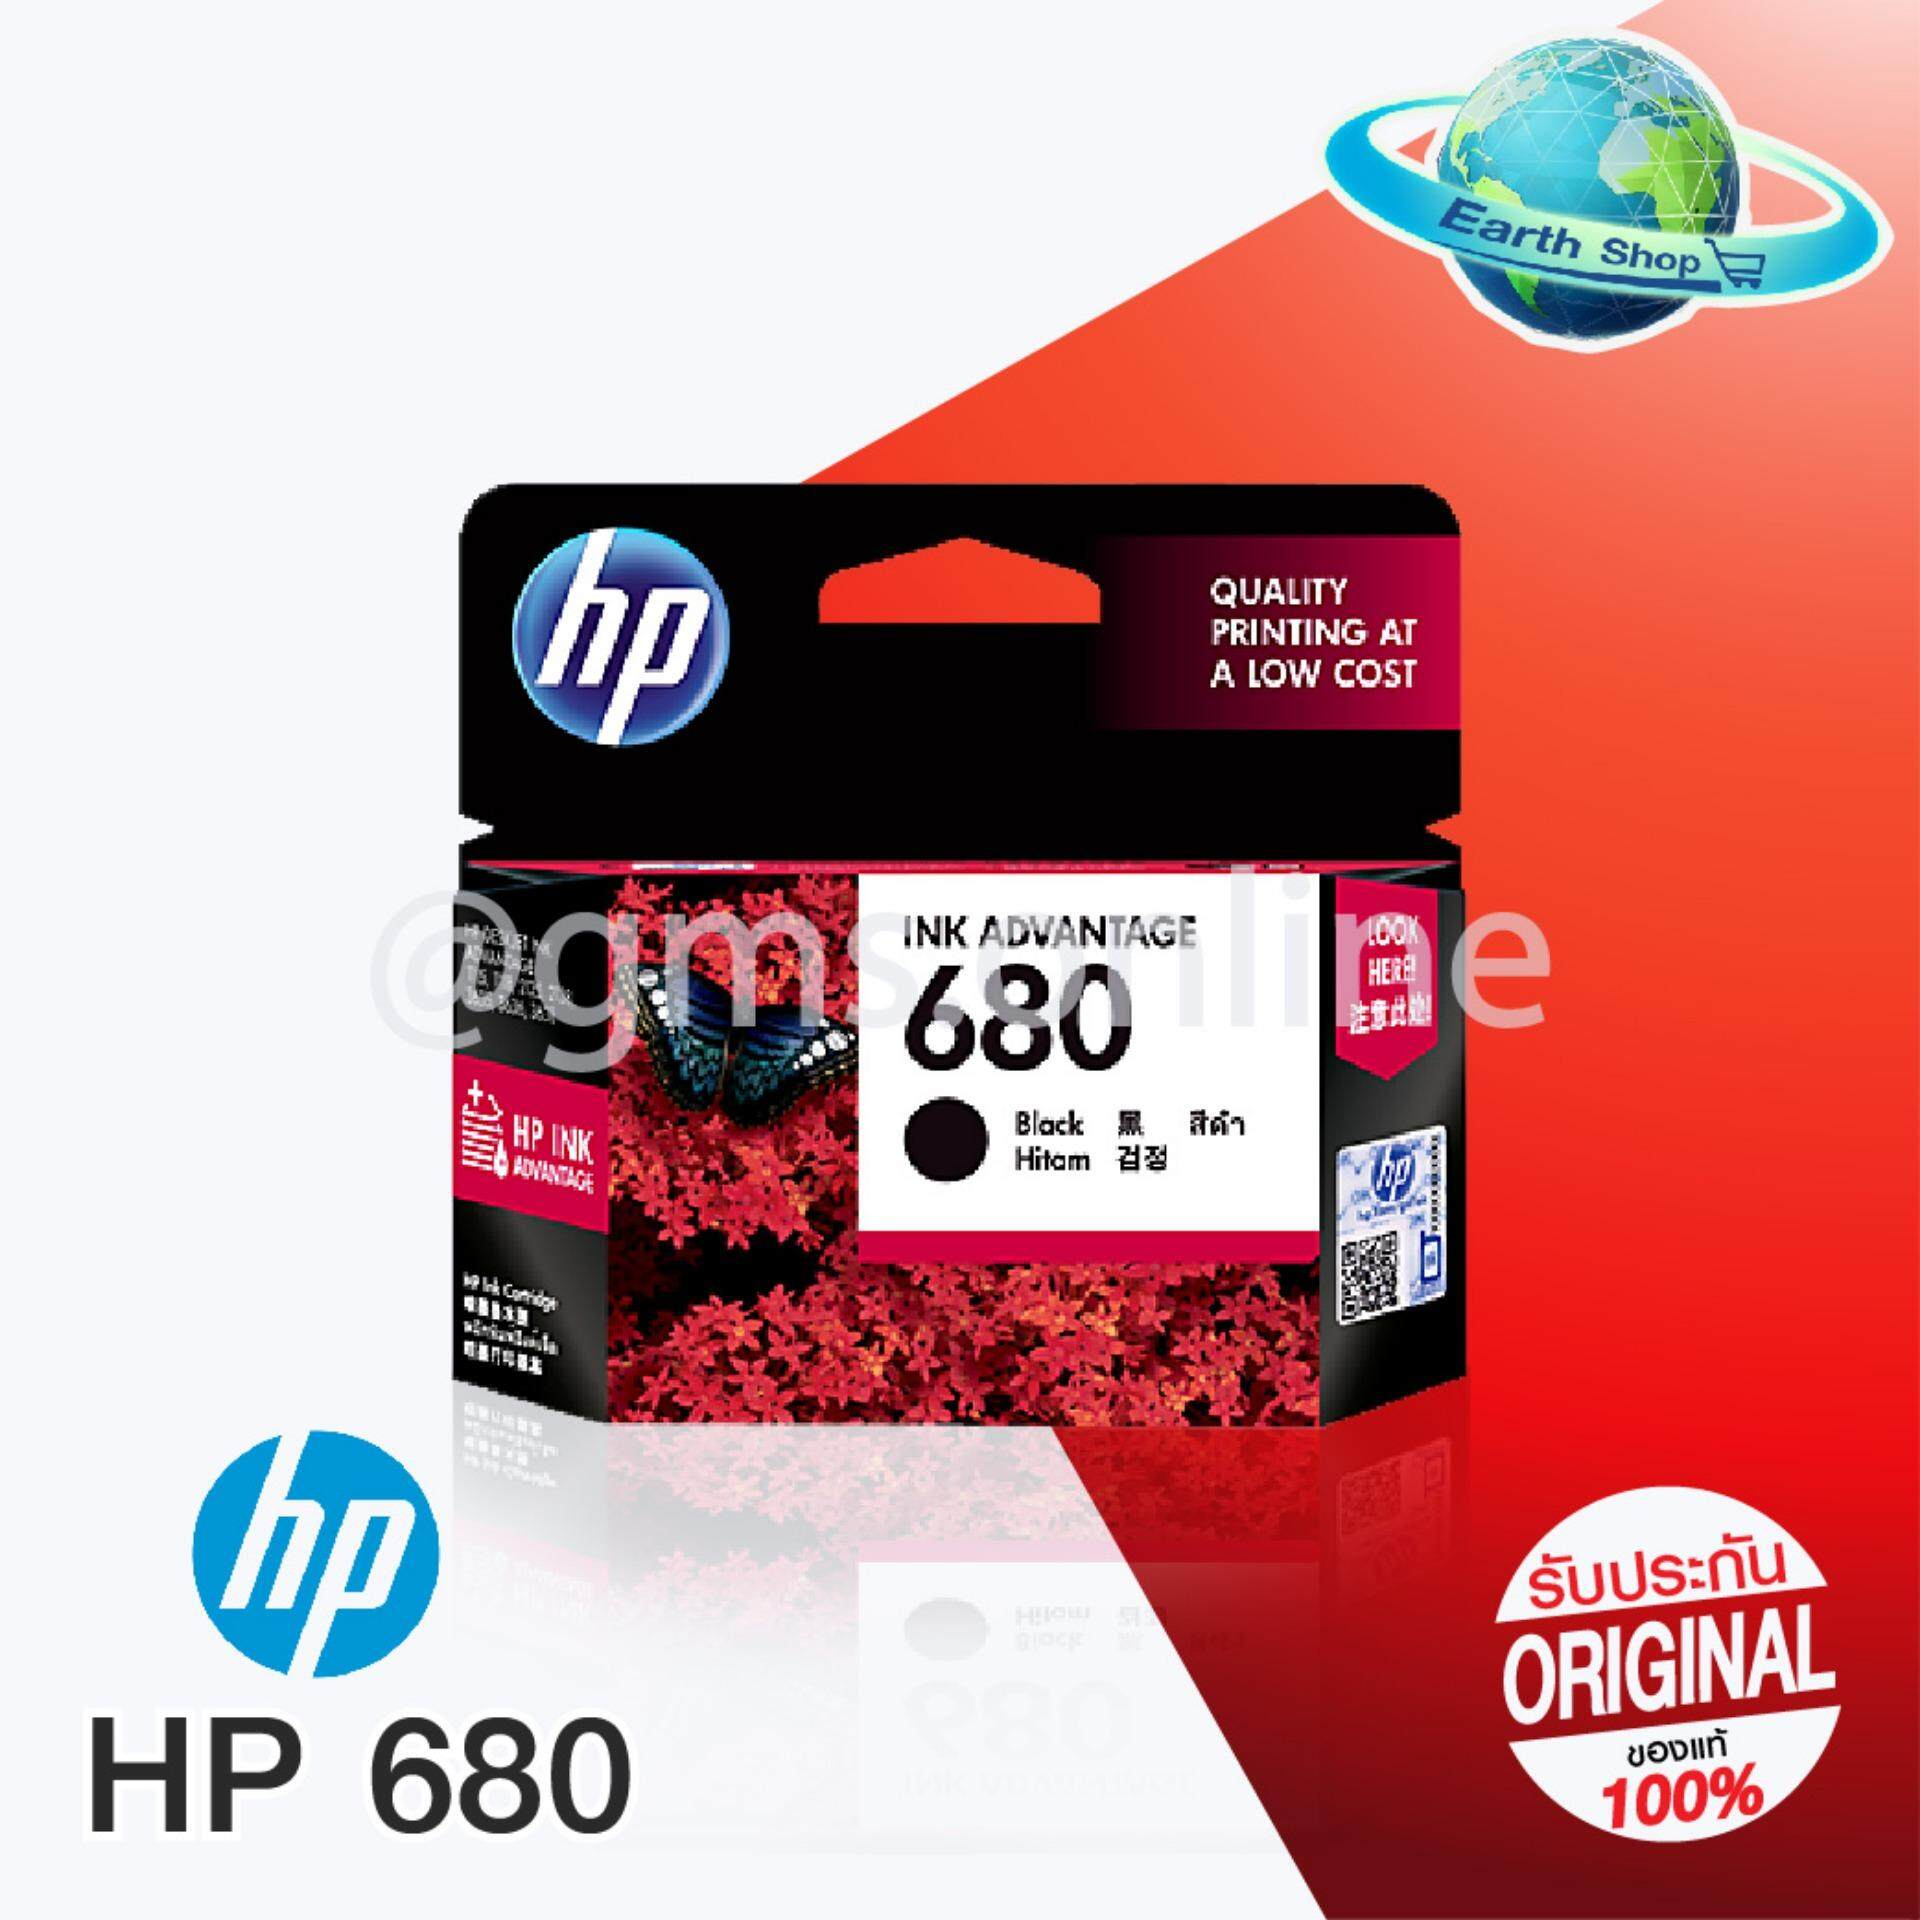 HP 680 (F6V27AA) INK Black สีดำ ของแท้HP DeskJet Ink Advantage 1115,1118,2135,2138,3635,3636,3638,3775,3776,3777,3778,3777,3778,3830,3835,3838,4535,4536,4538,4675,4678